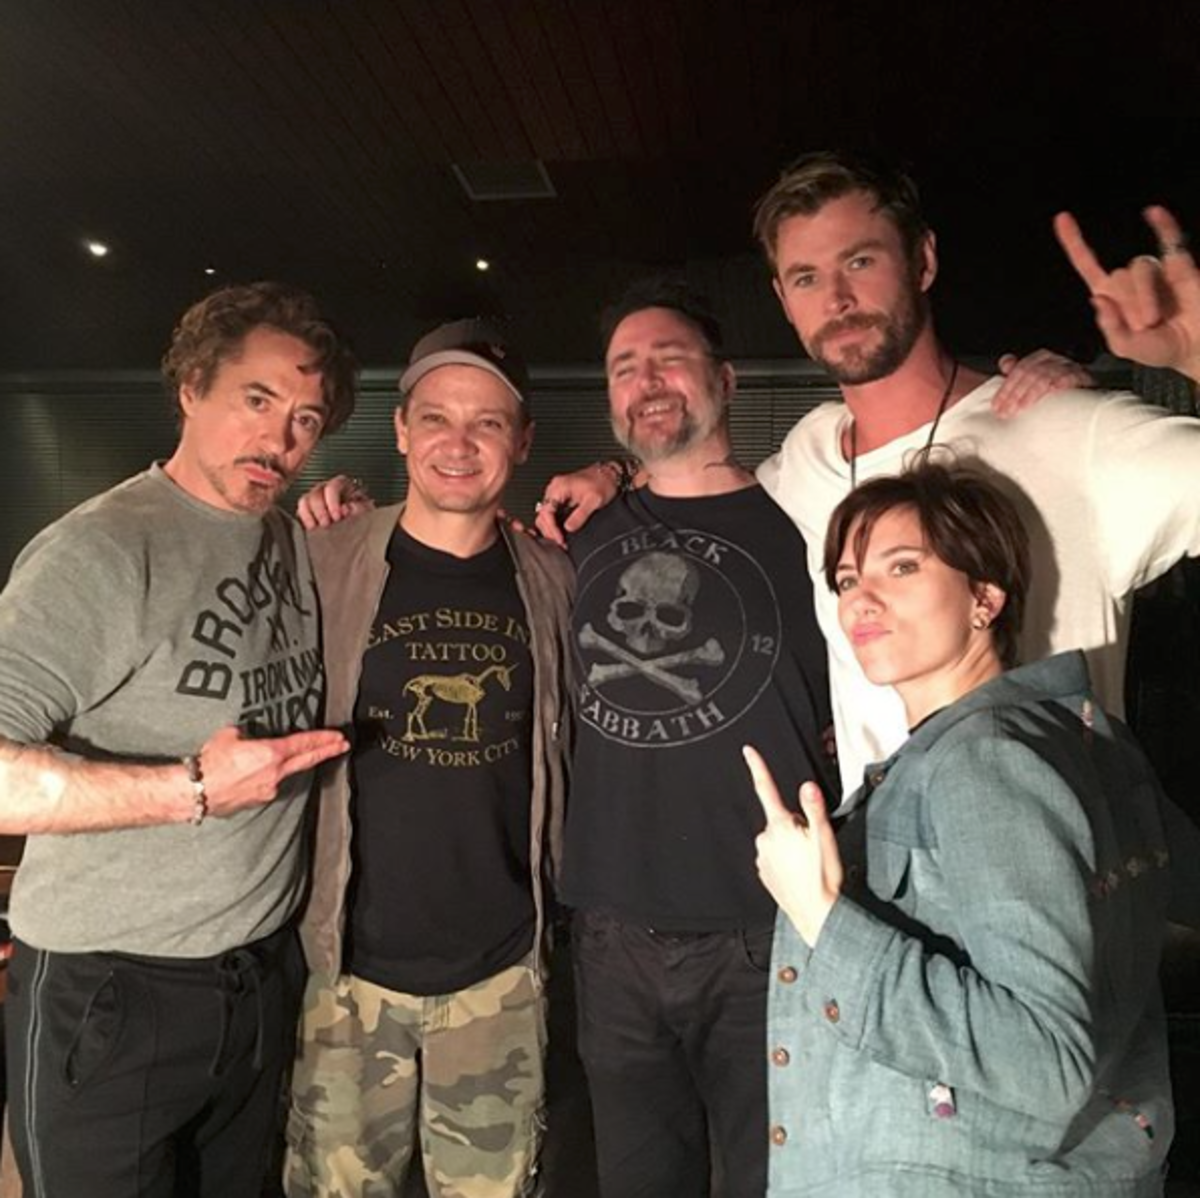 From left to right: Robert Downey Jr., Jeremy Renner, Josh Lord, Chris Hemsworth, and Scarlett Johansson